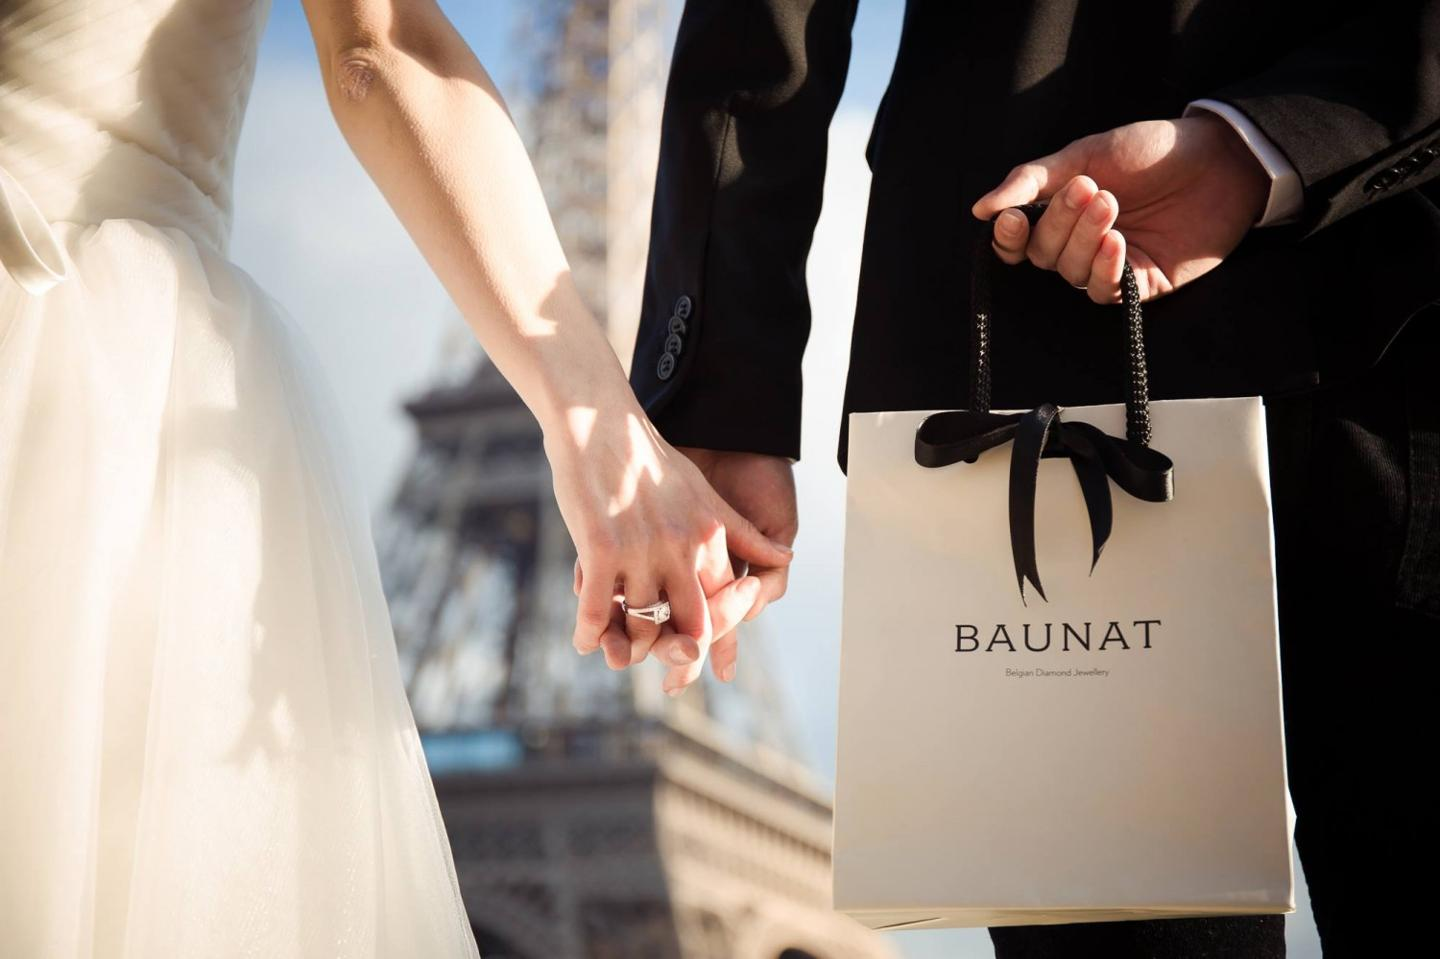 The potential of jewels and diamonds turning into investment is great, BAUNAT is your partner.